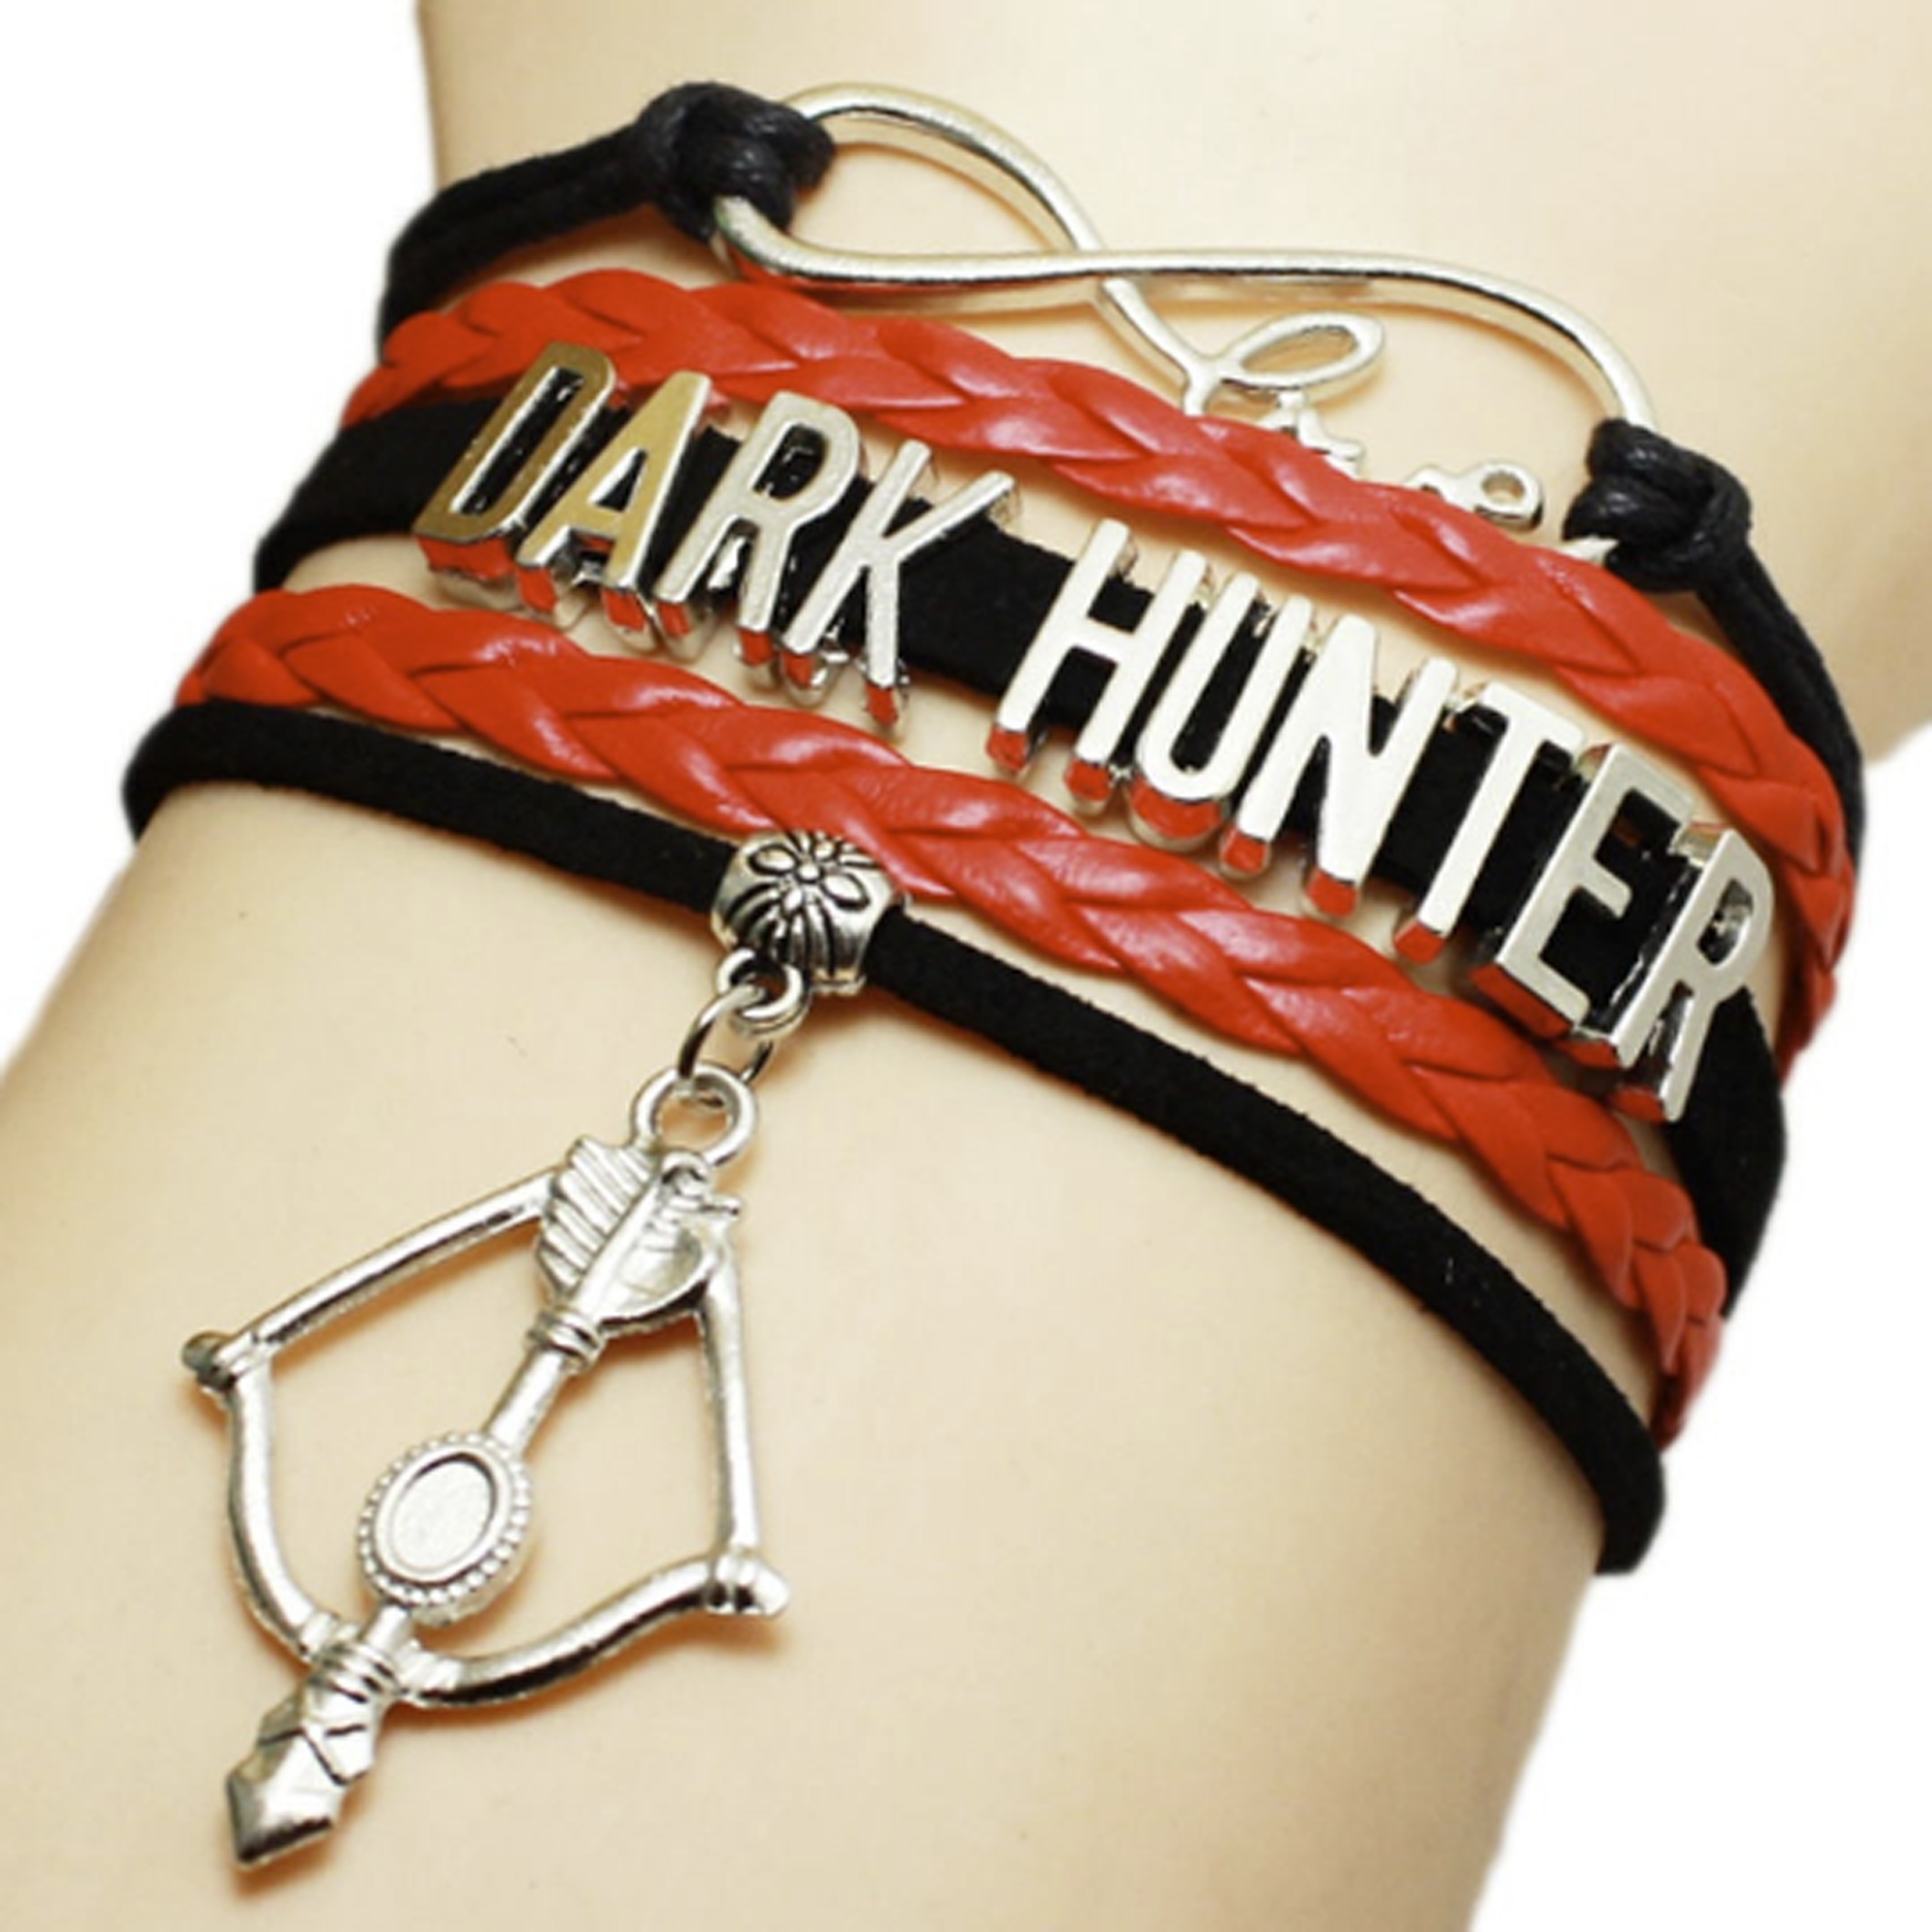 Dark-Hunter Bracelets